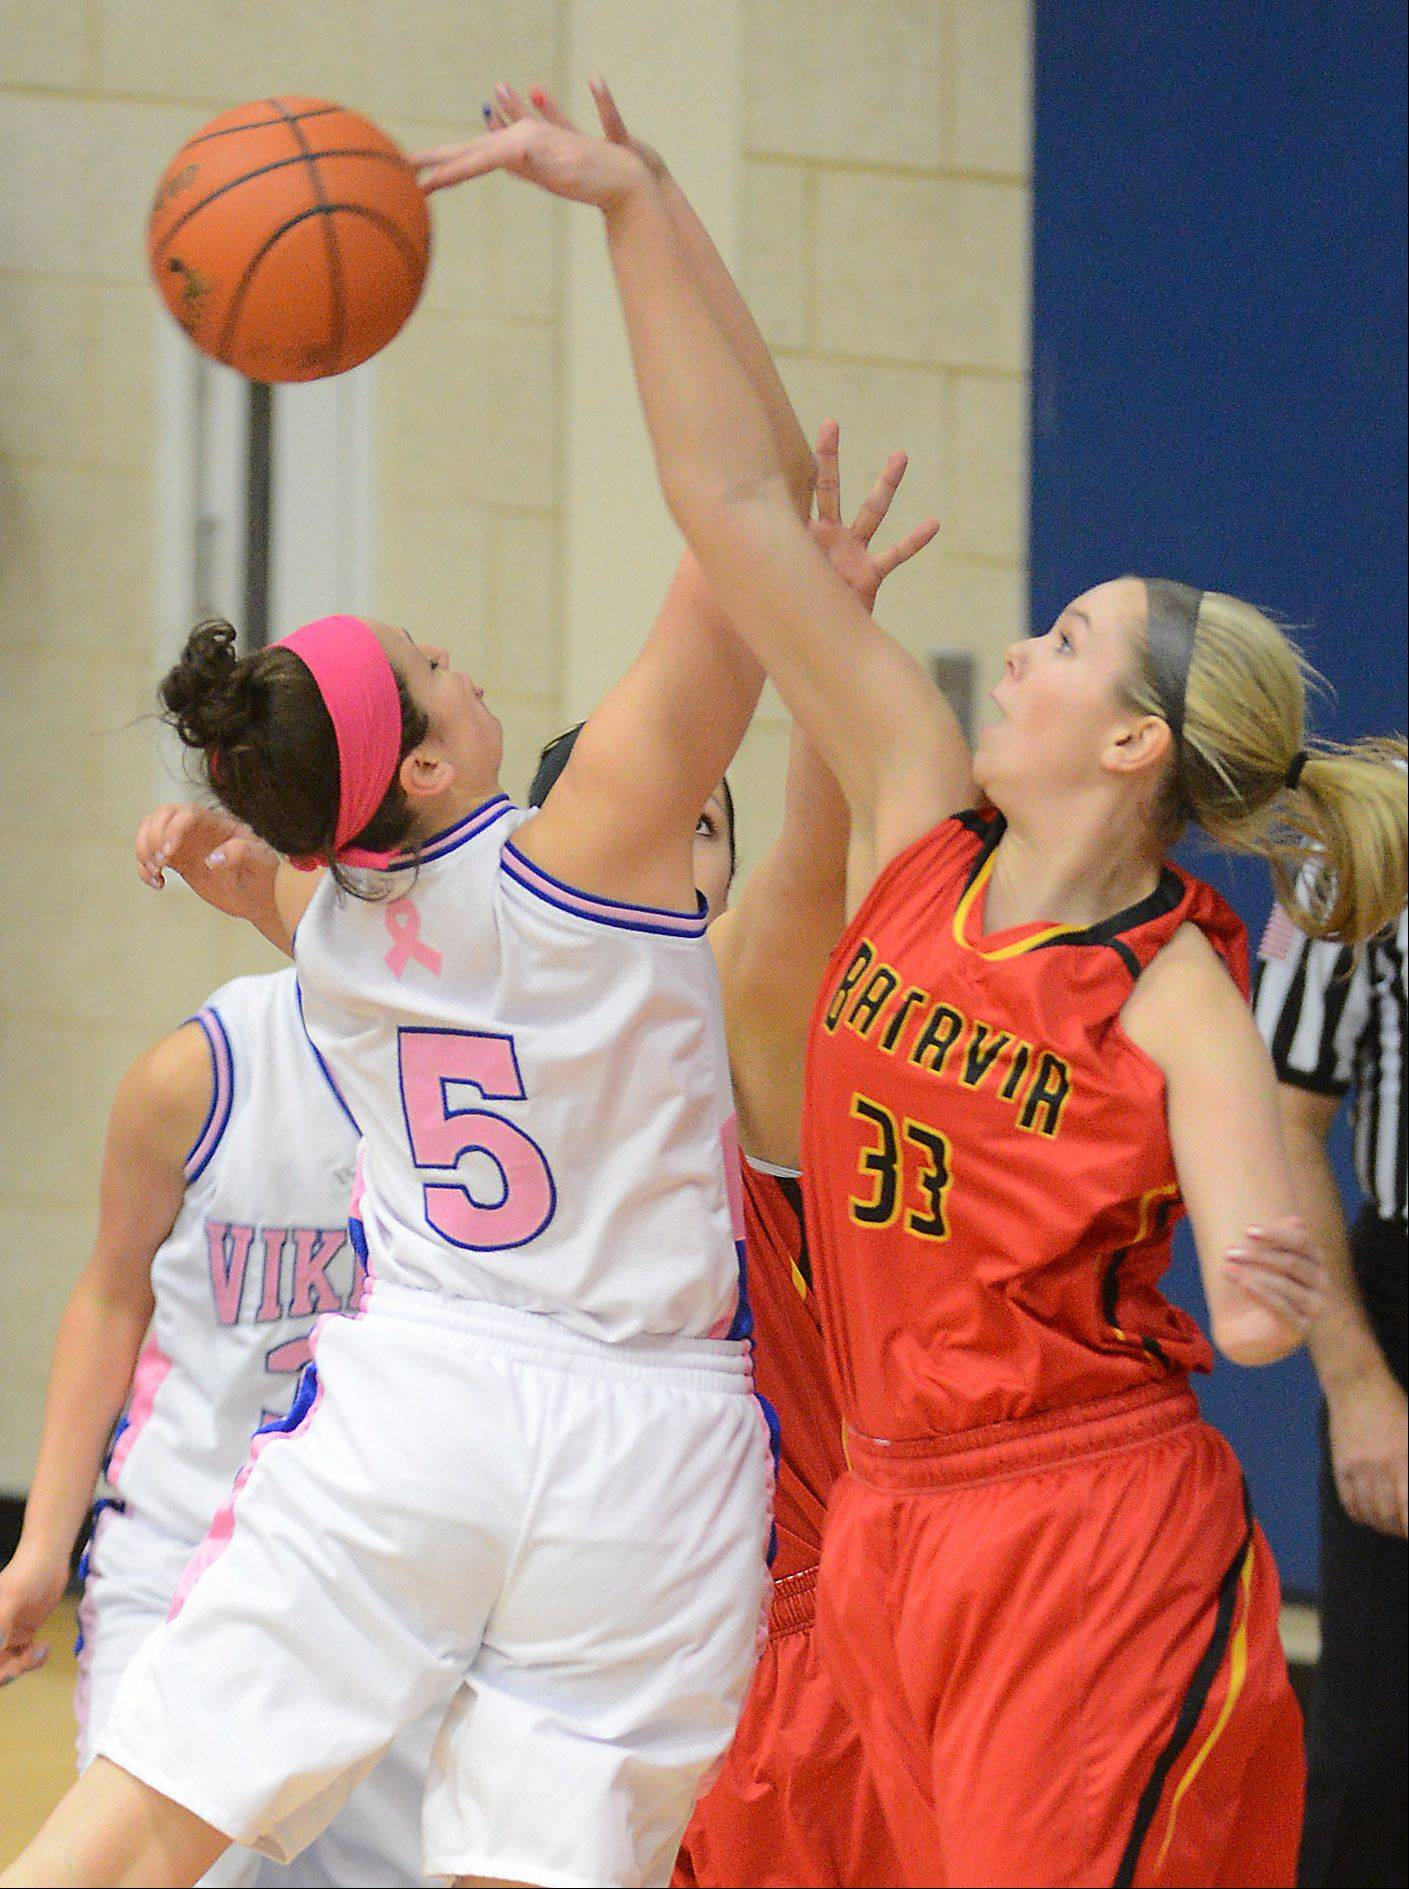 Batavia's Erin Bayram (33) blocks a shot by Geneva's Abby Novak (5) during Friday's game in Geneva.